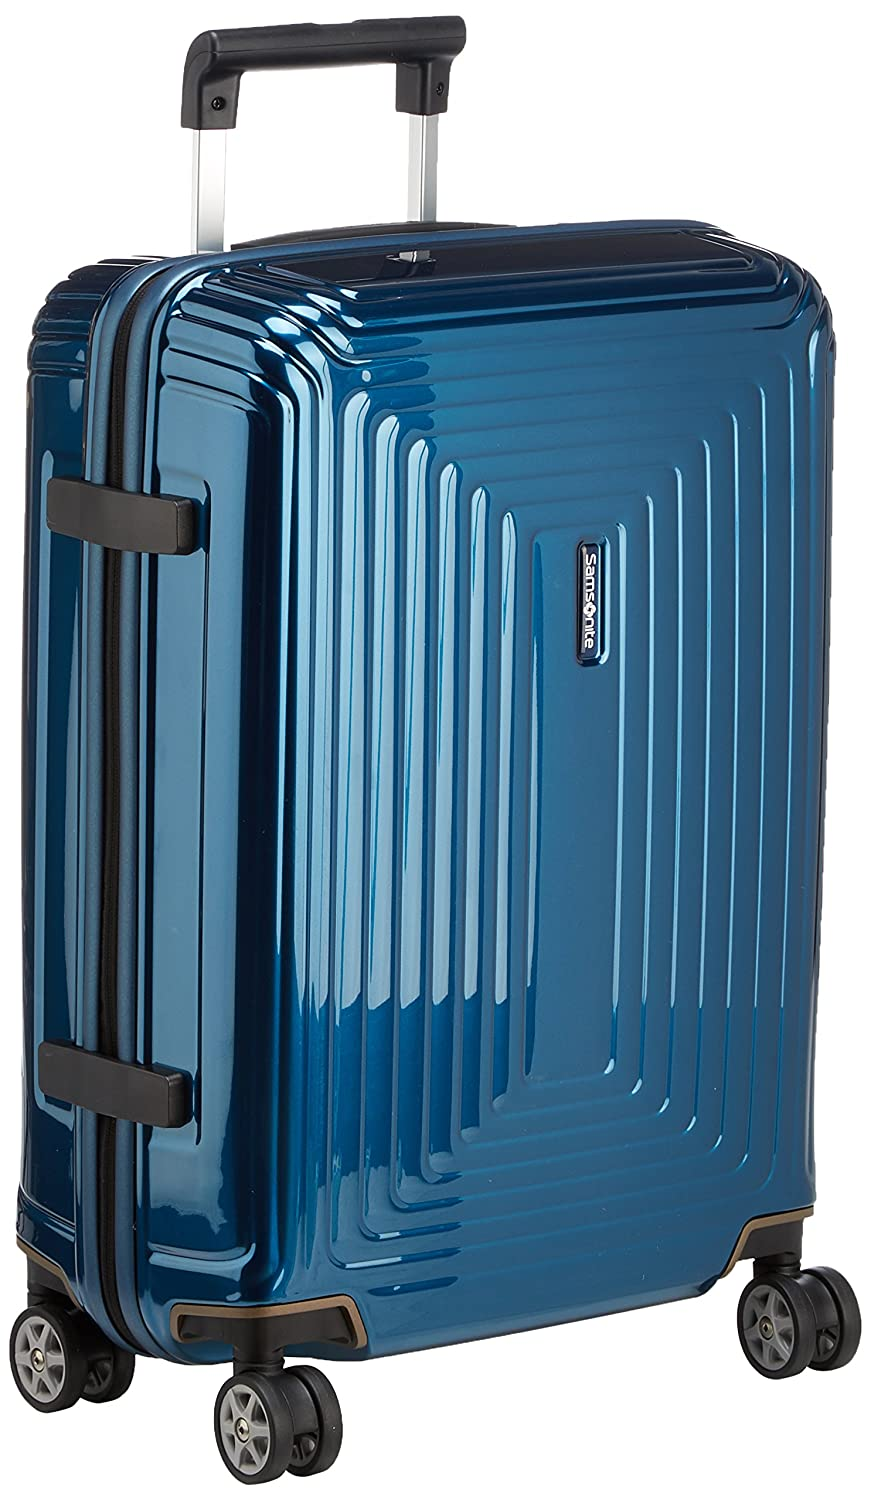 Samsonite Neopulse Koffer Test